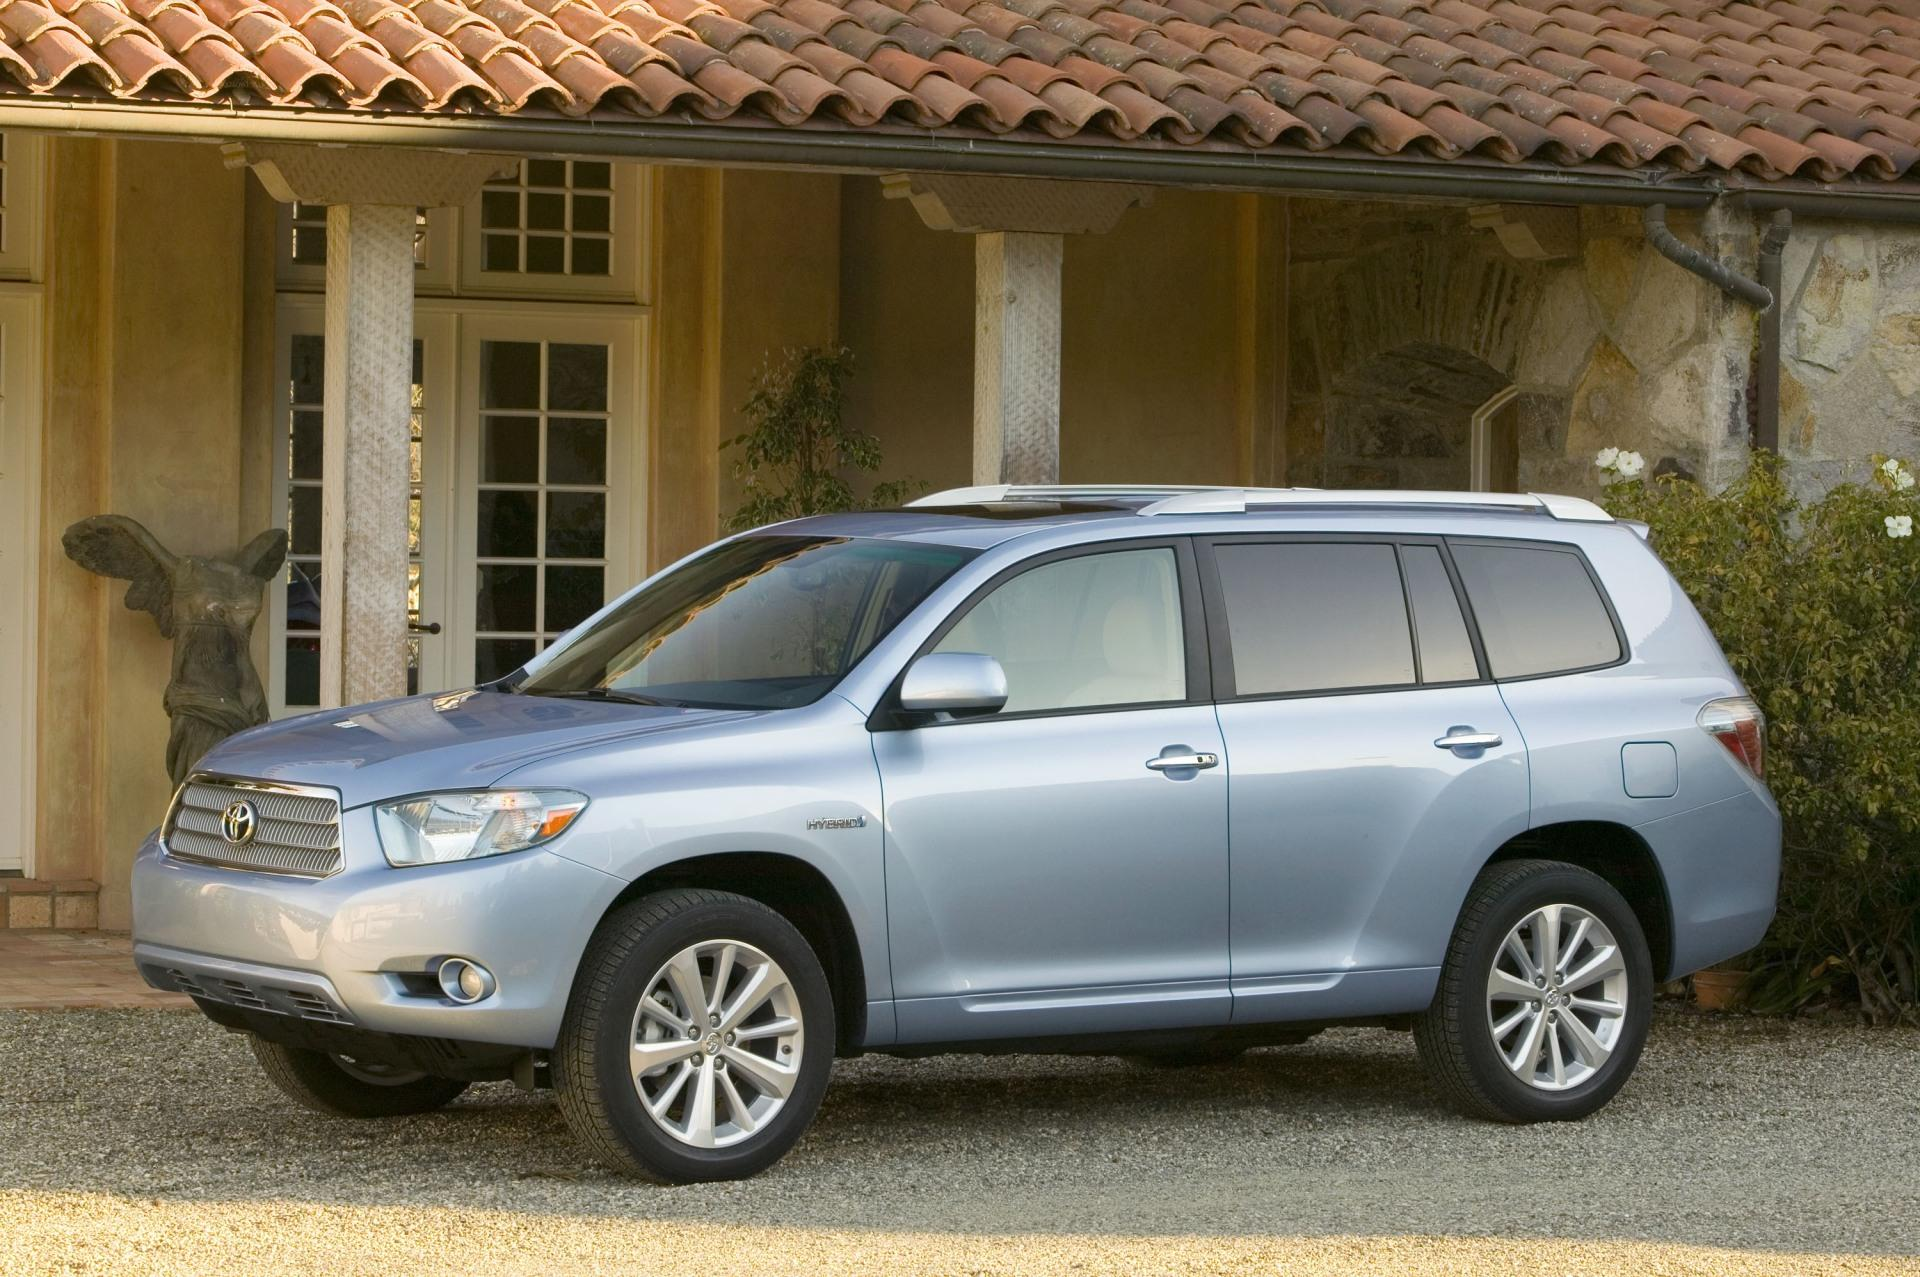 2009 toyota highlander hybrid technical specifications and data engine dimensions and. Black Bedroom Furniture Sets. Home Design Ideas